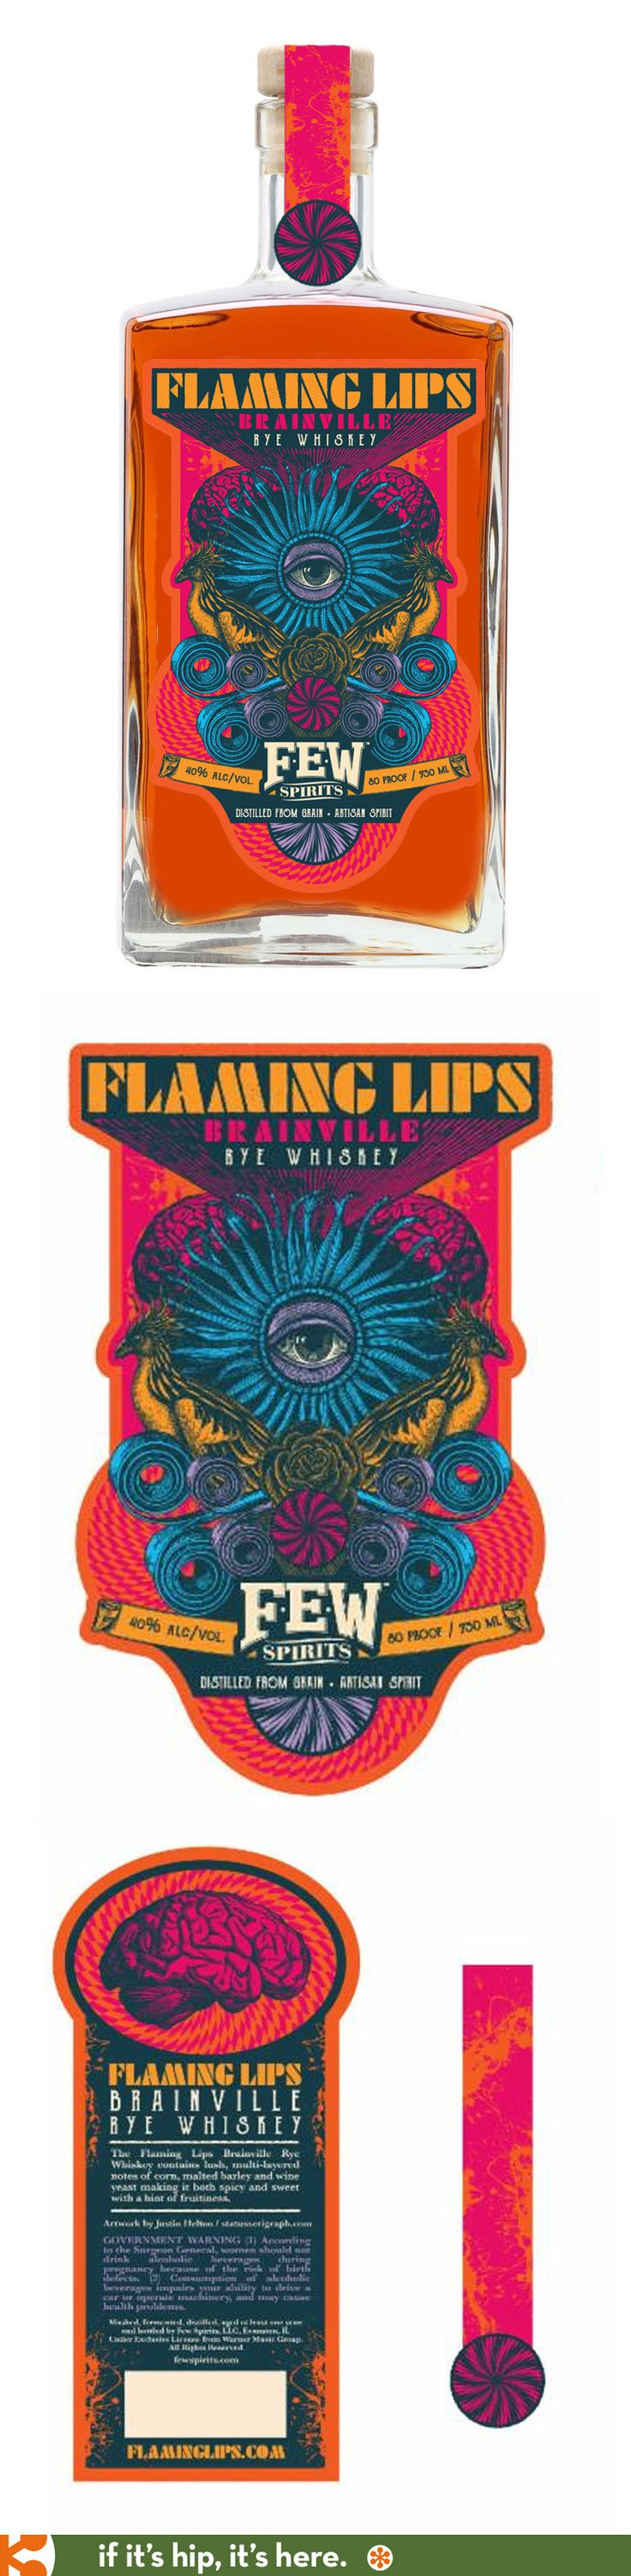 Few Spirits has collaborated with Status Seriograph to design this special Flaming Lips edition of their Branville Rye Whiskey, available this October. Limited to 5,000 bottles, the psychedelic label design is by Justin Helton.